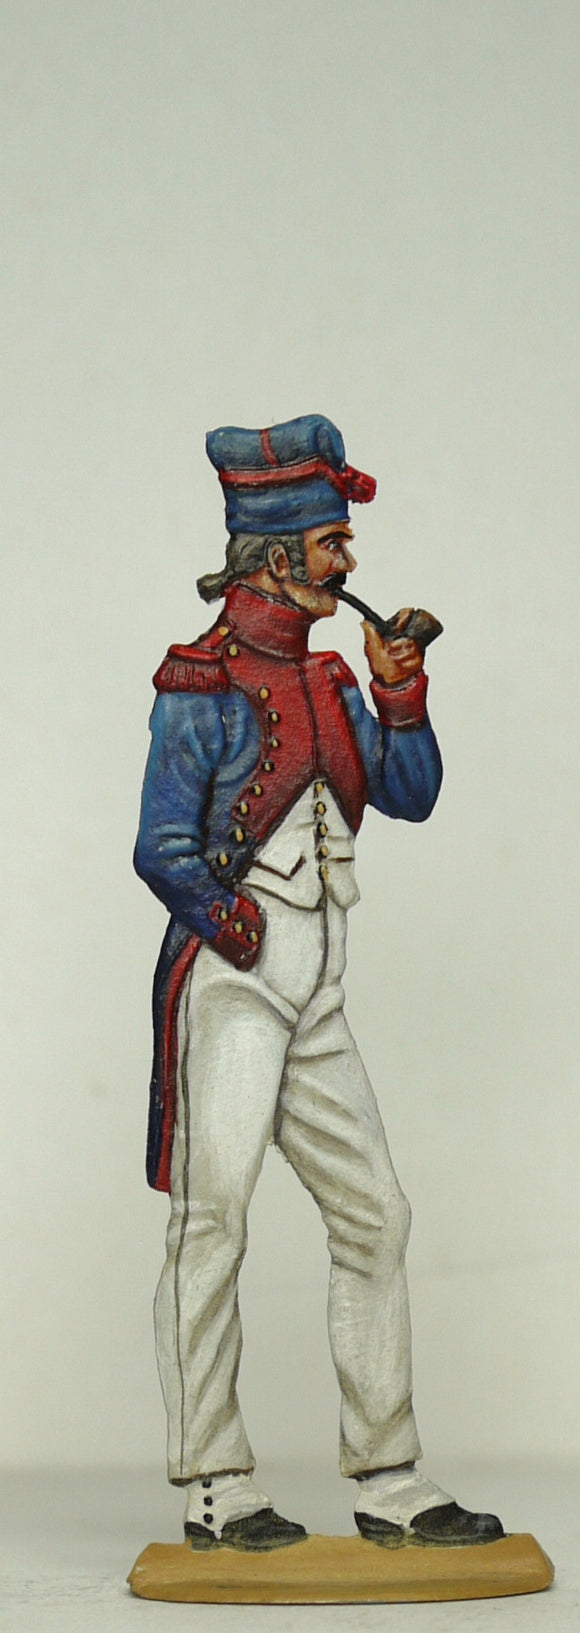 Grenadier smoking pipe - Glorious Empires-Historical Miniatures